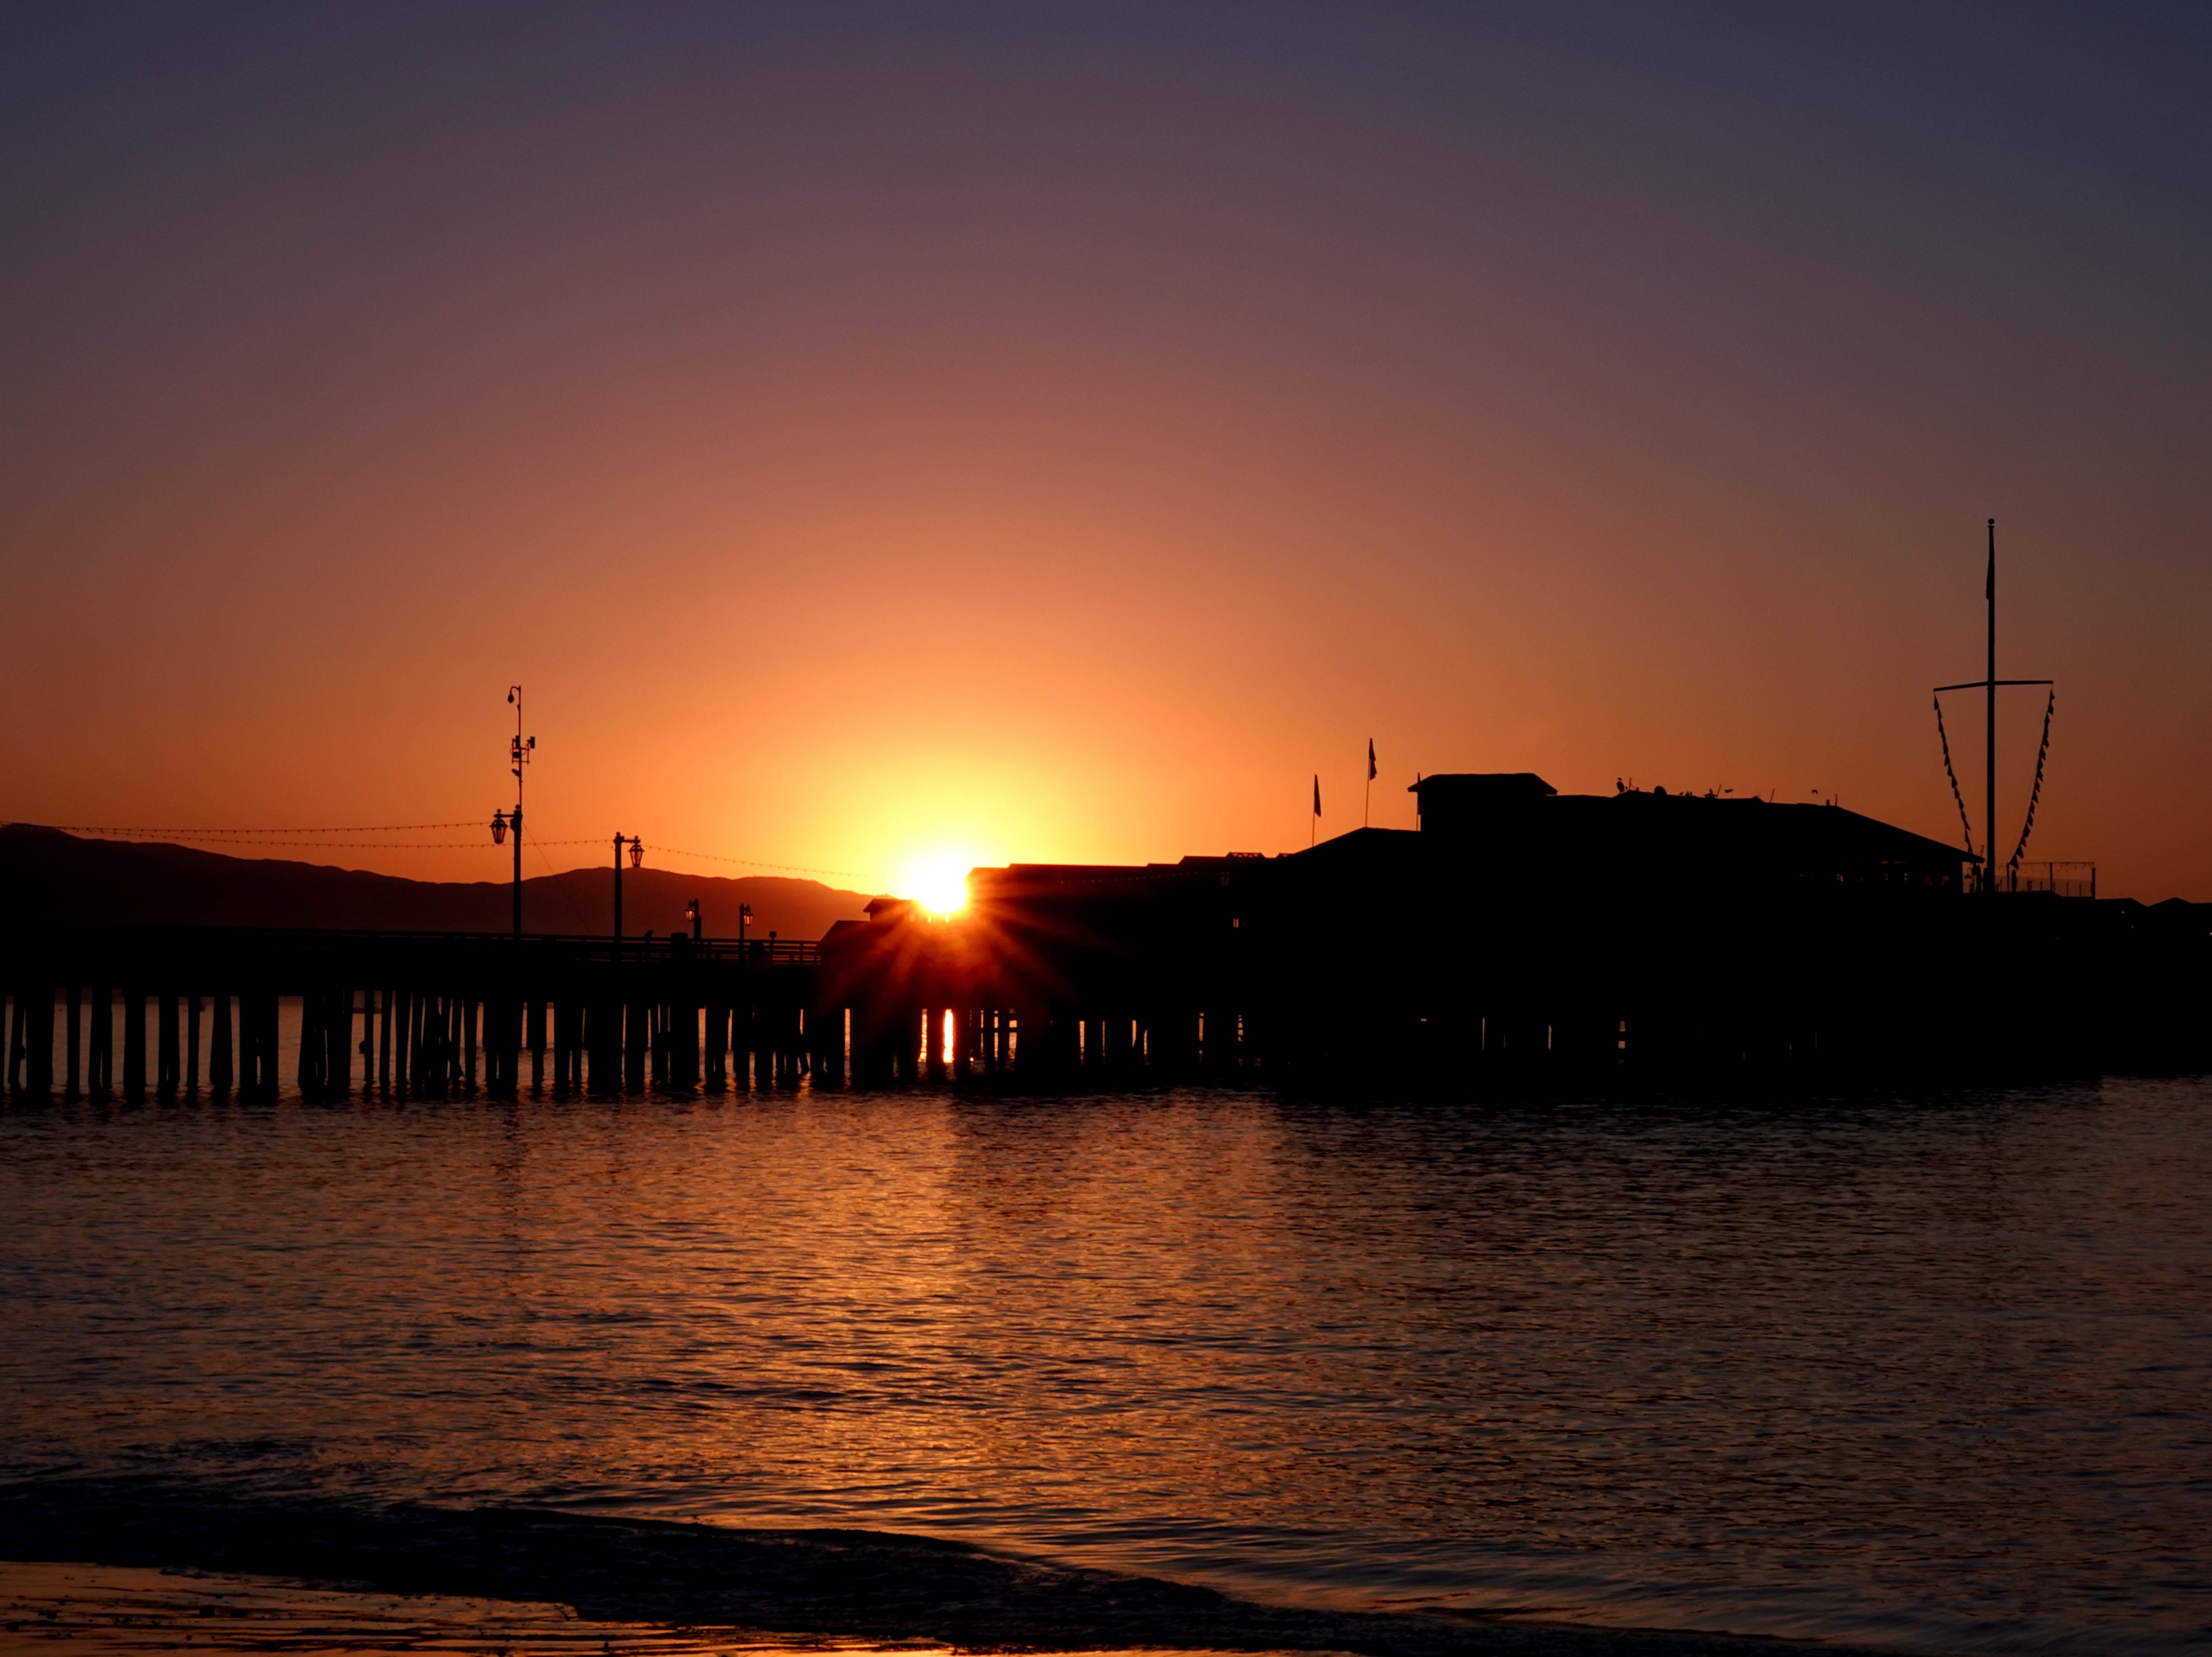 The sun rises over Stearns Wharf.